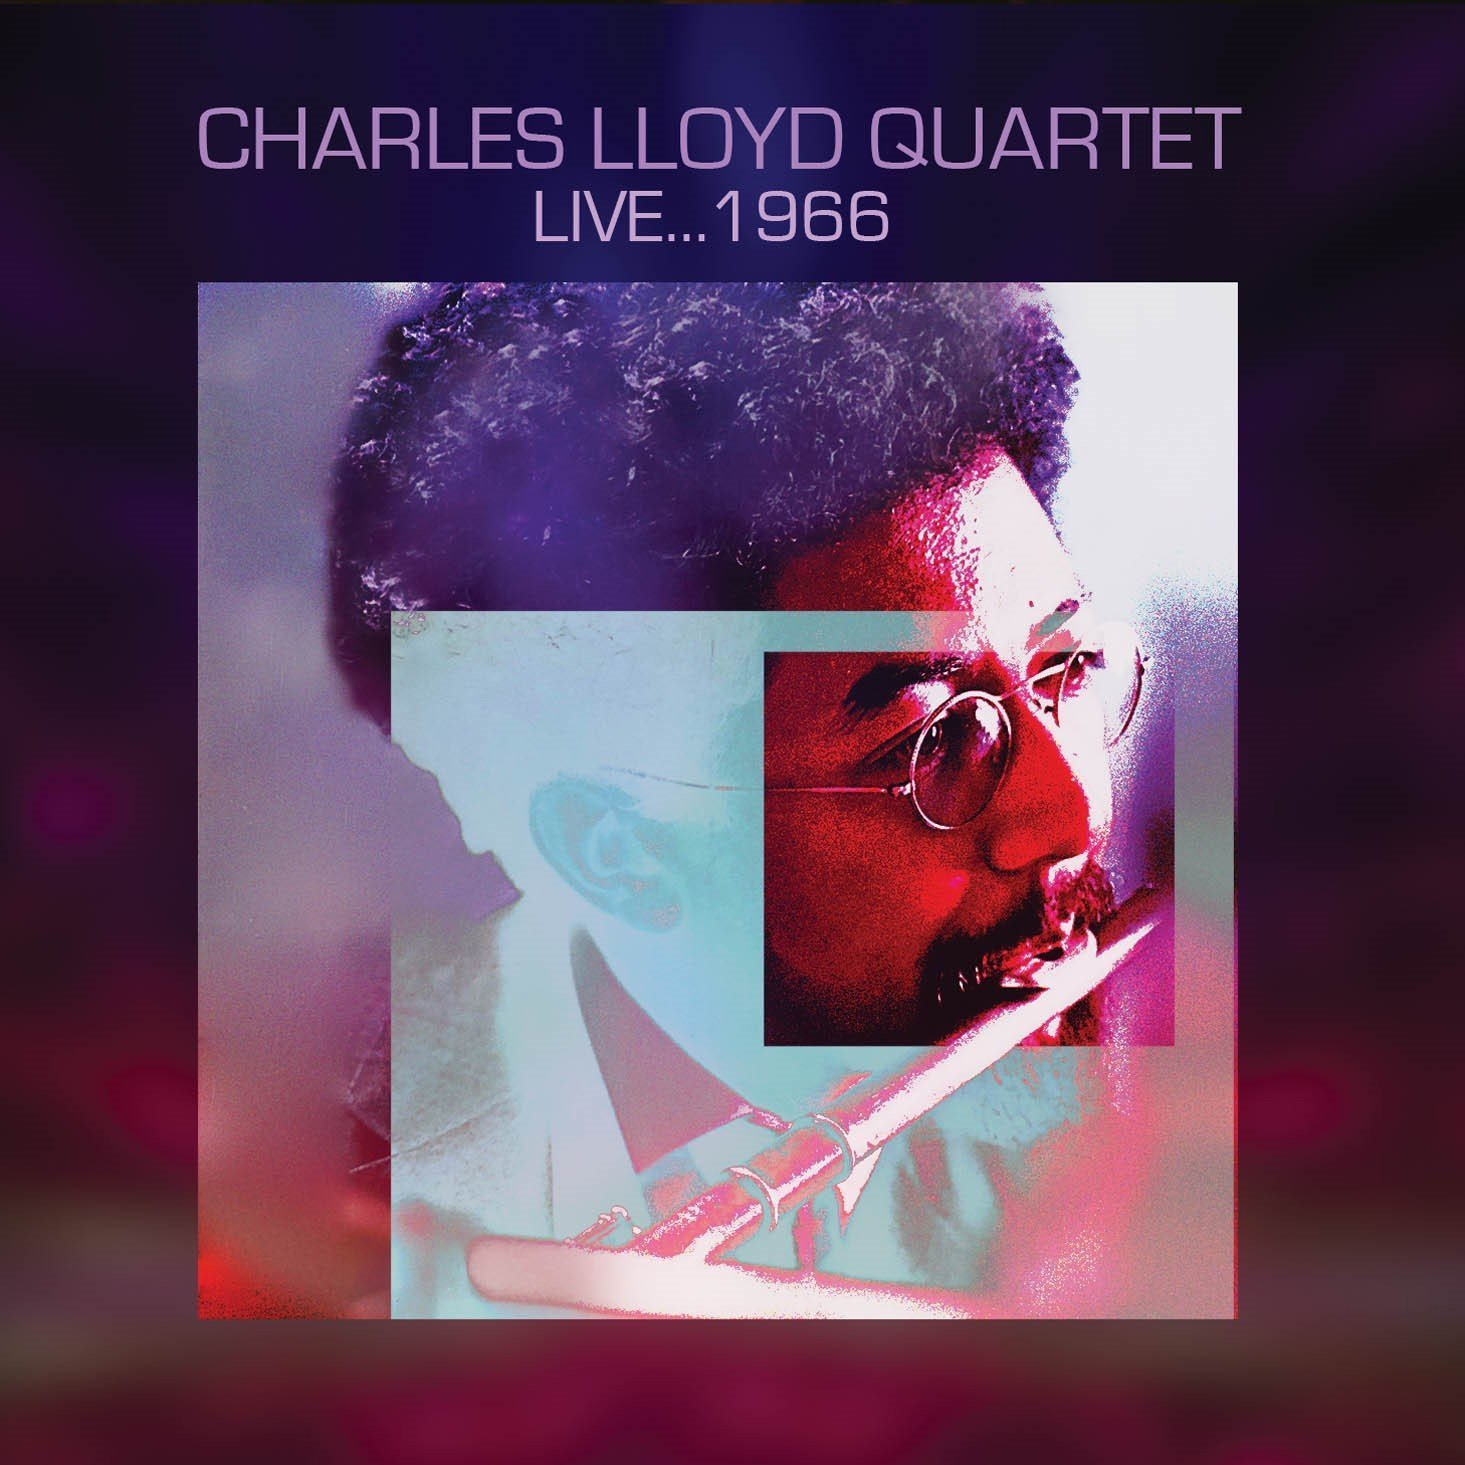 CHARLES LLOYD QUARTET - LIVE 1966 (2 CD) (CD)